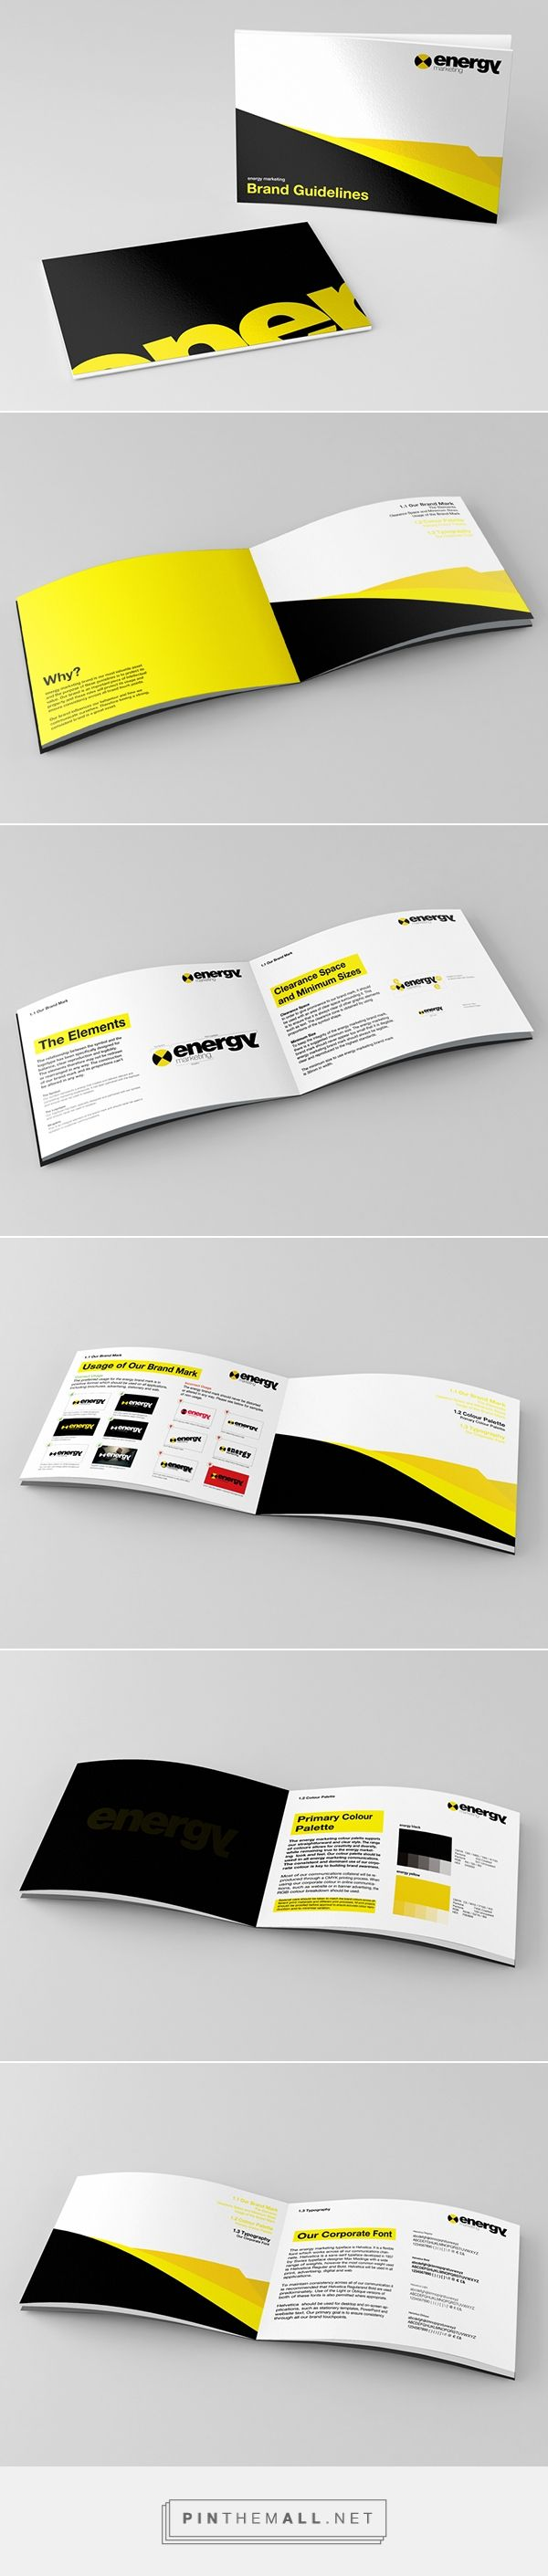 Manual de Identidad Corporativa (maquetación): Energy Marketing Branding by Lukasz KuIakowski